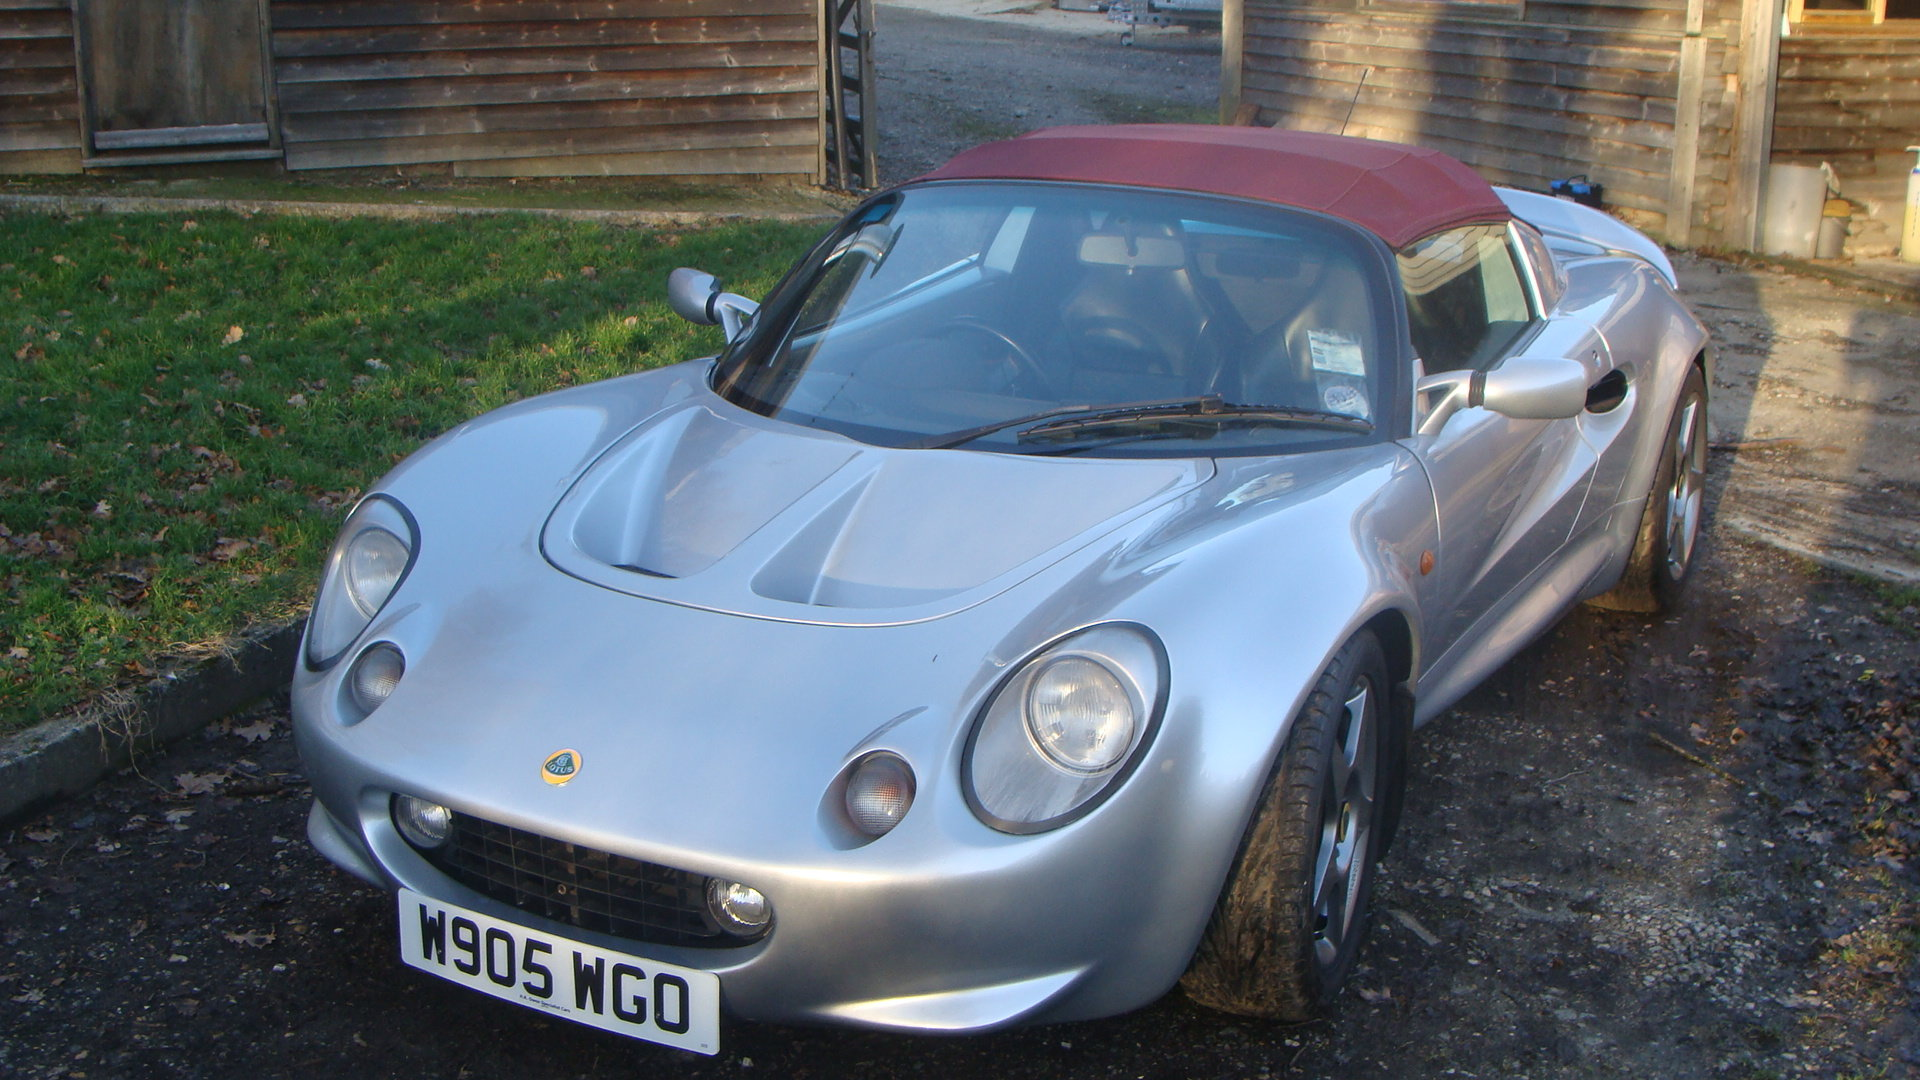 2000 Lotus Elise 160 Sport roadster For Sale (picture 2 of 6)